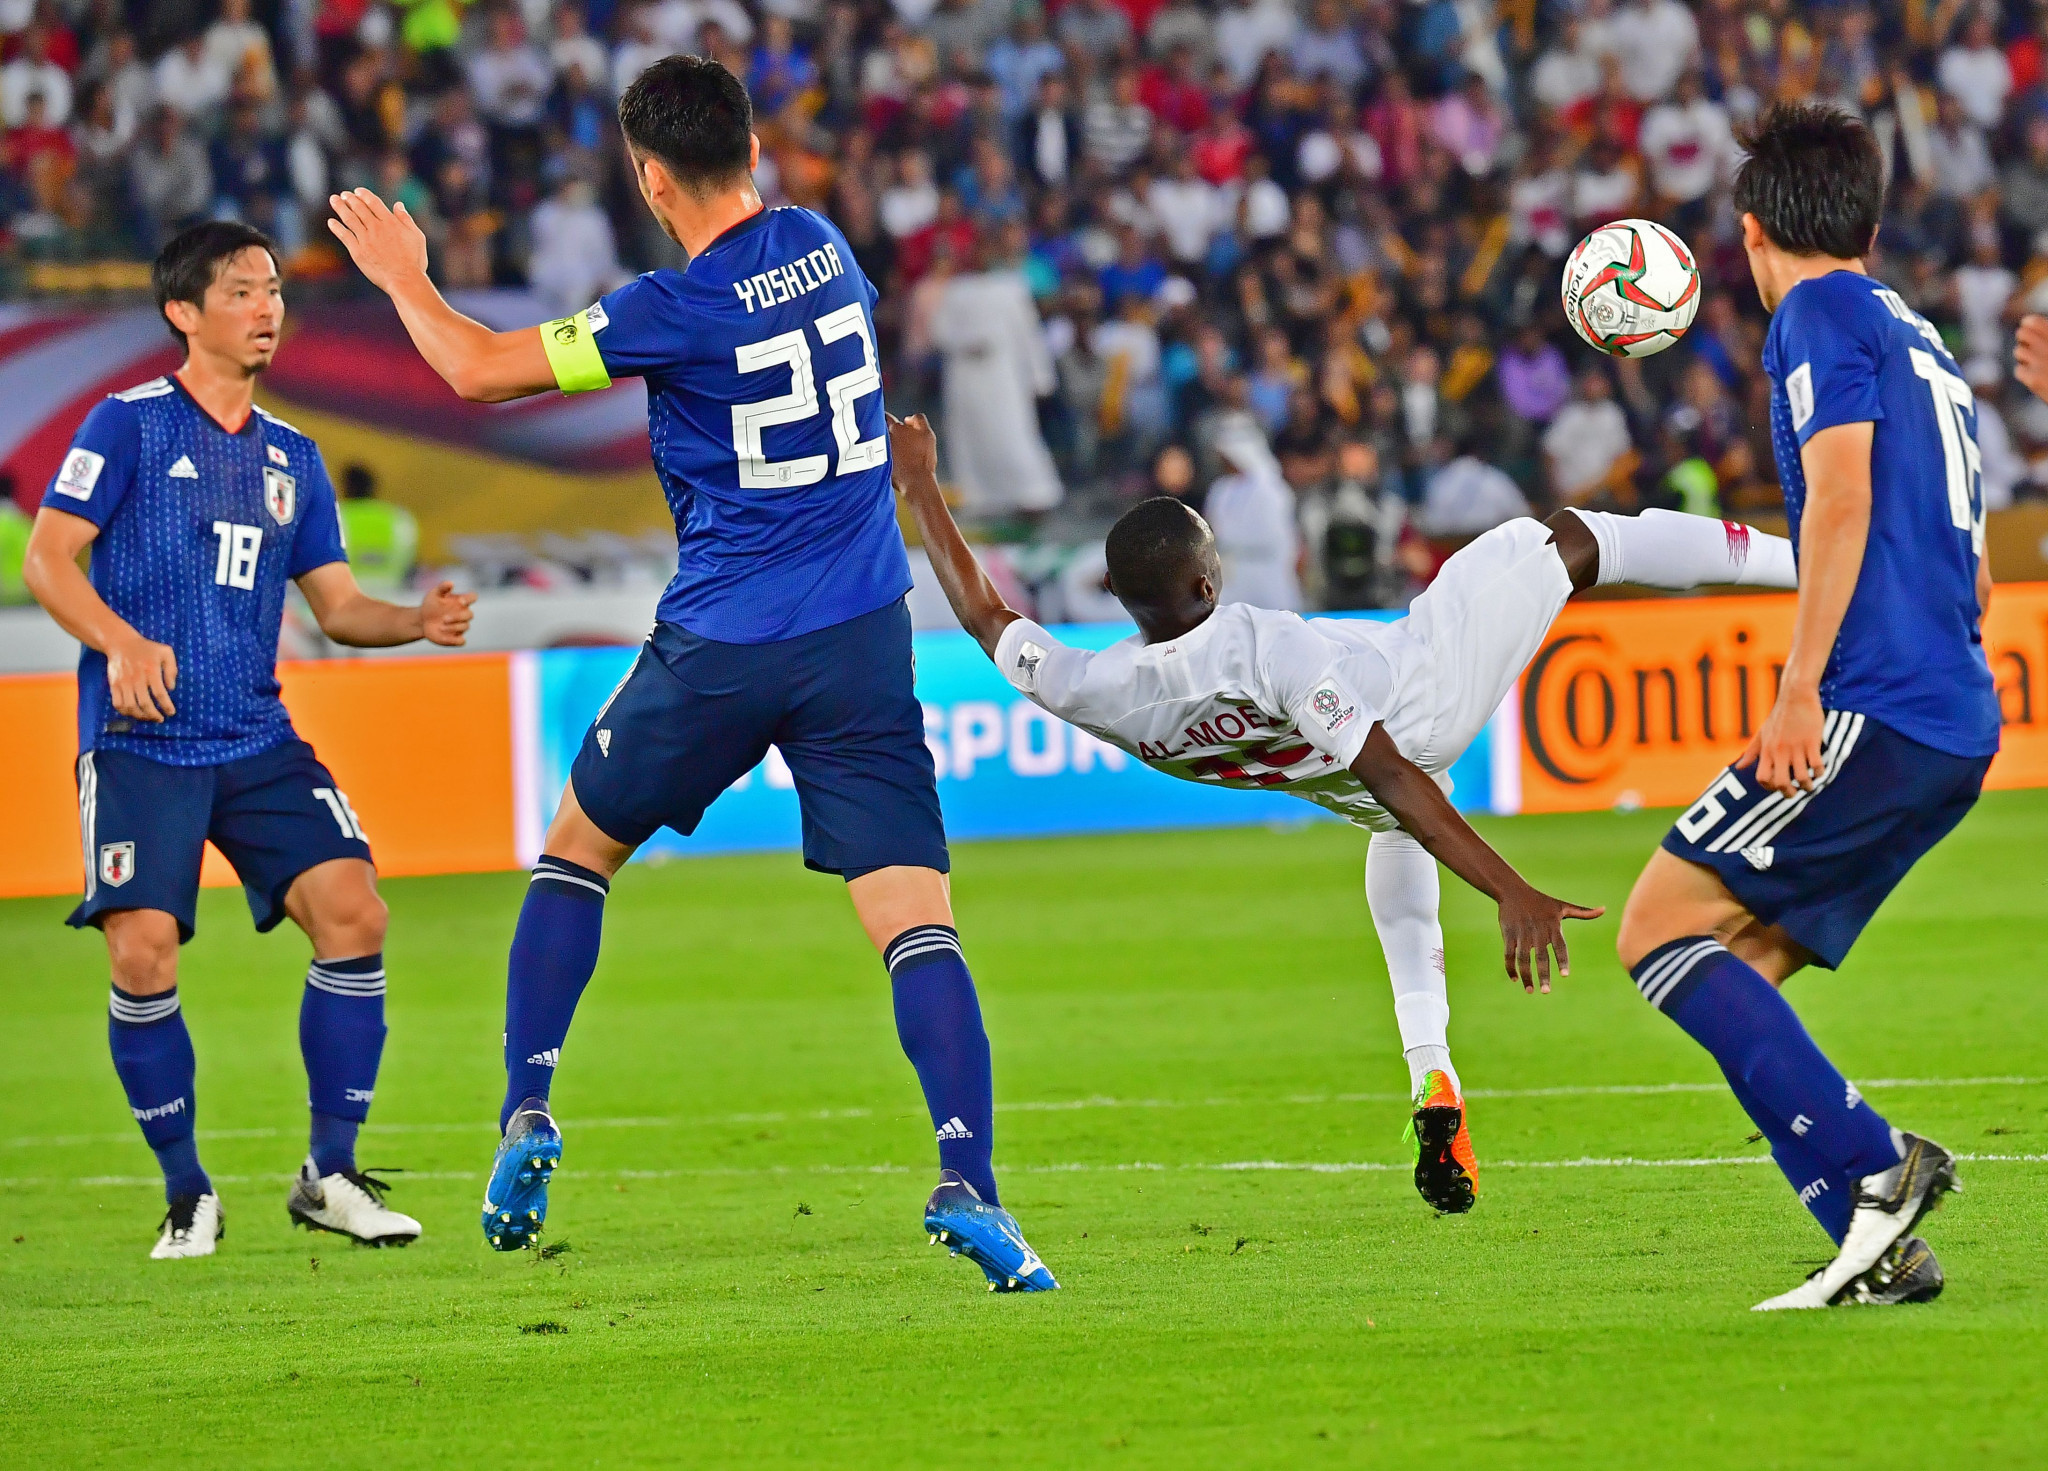 Almoez Ali's overhead kick was the stand-out moment of the final ©Getty Images